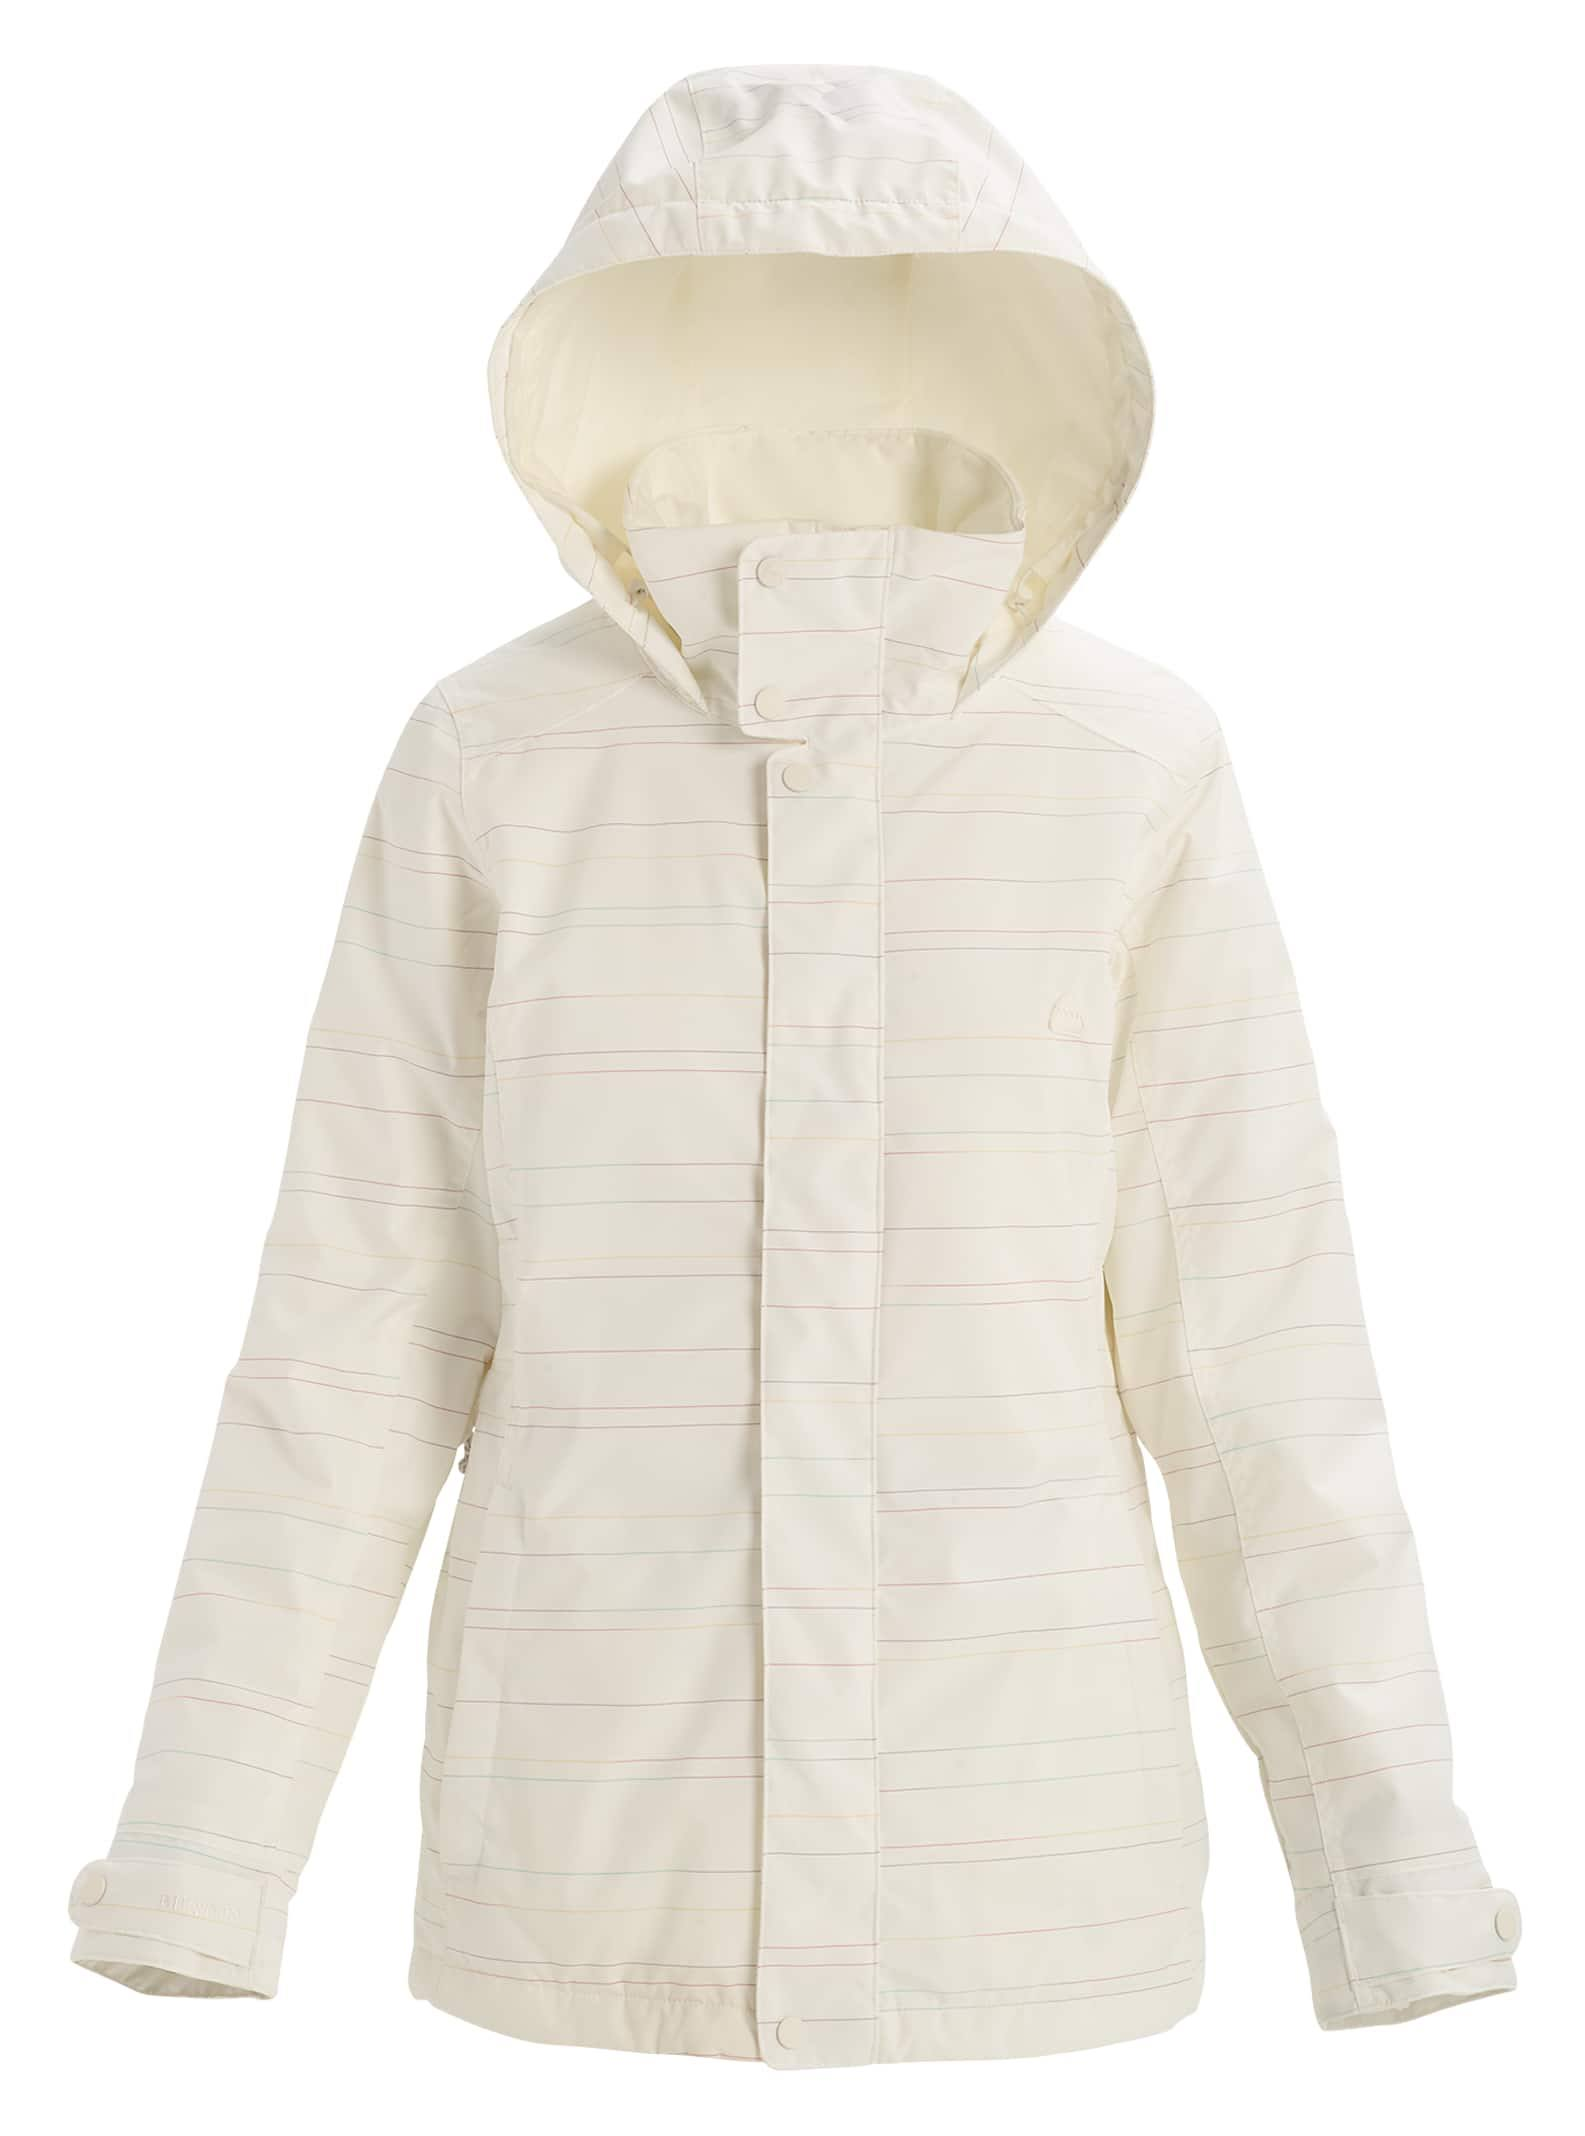 Burton Women's Jet Set Jacket, Stout White Spacedye, L